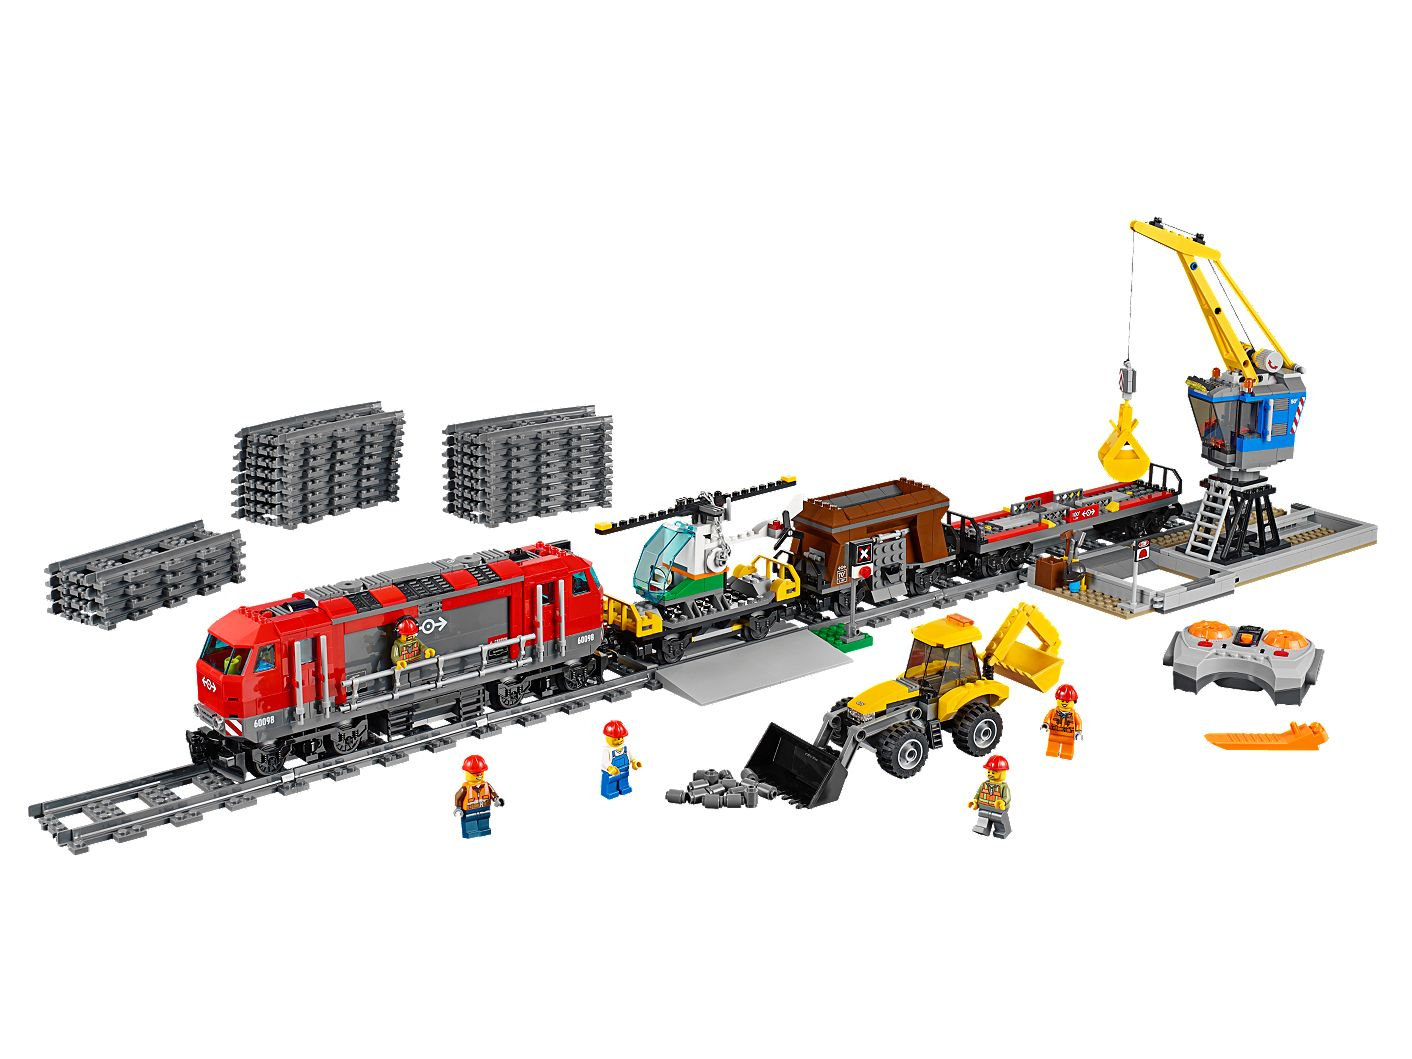 Heavy-Haul Train 60098 | City | Buy online at the Official LEGO® Shop US